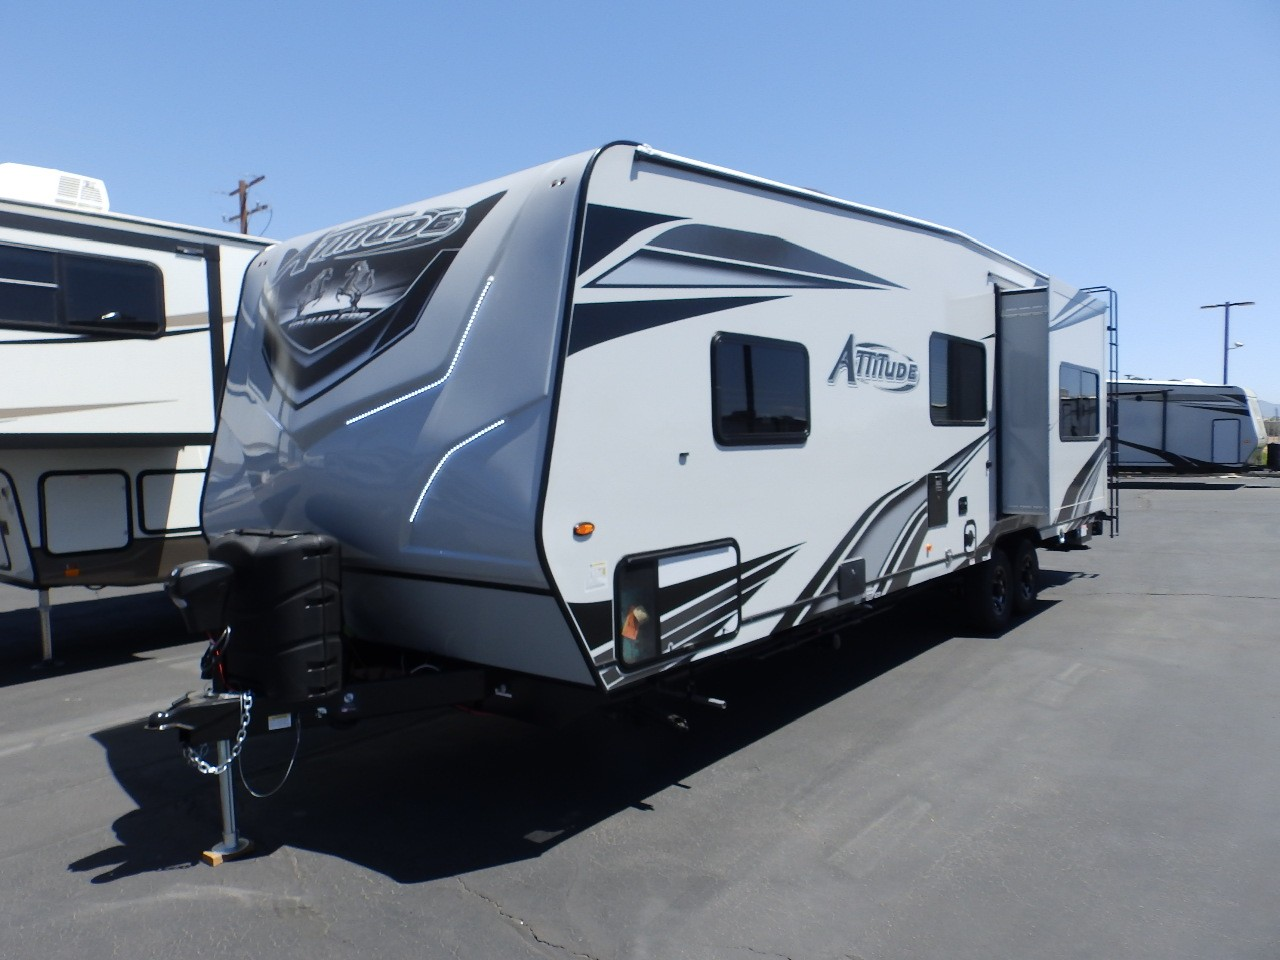 New, 2022, Eclipse, ATTITUDE 27SA, 1 SLIDE, FRONT PRIVATE BEDROOM, REAR ELECTRIC DINETTE, ONAN 4000, 330 WATT SOLAR, INVERTER, POWER AWNING, Toy Haulers